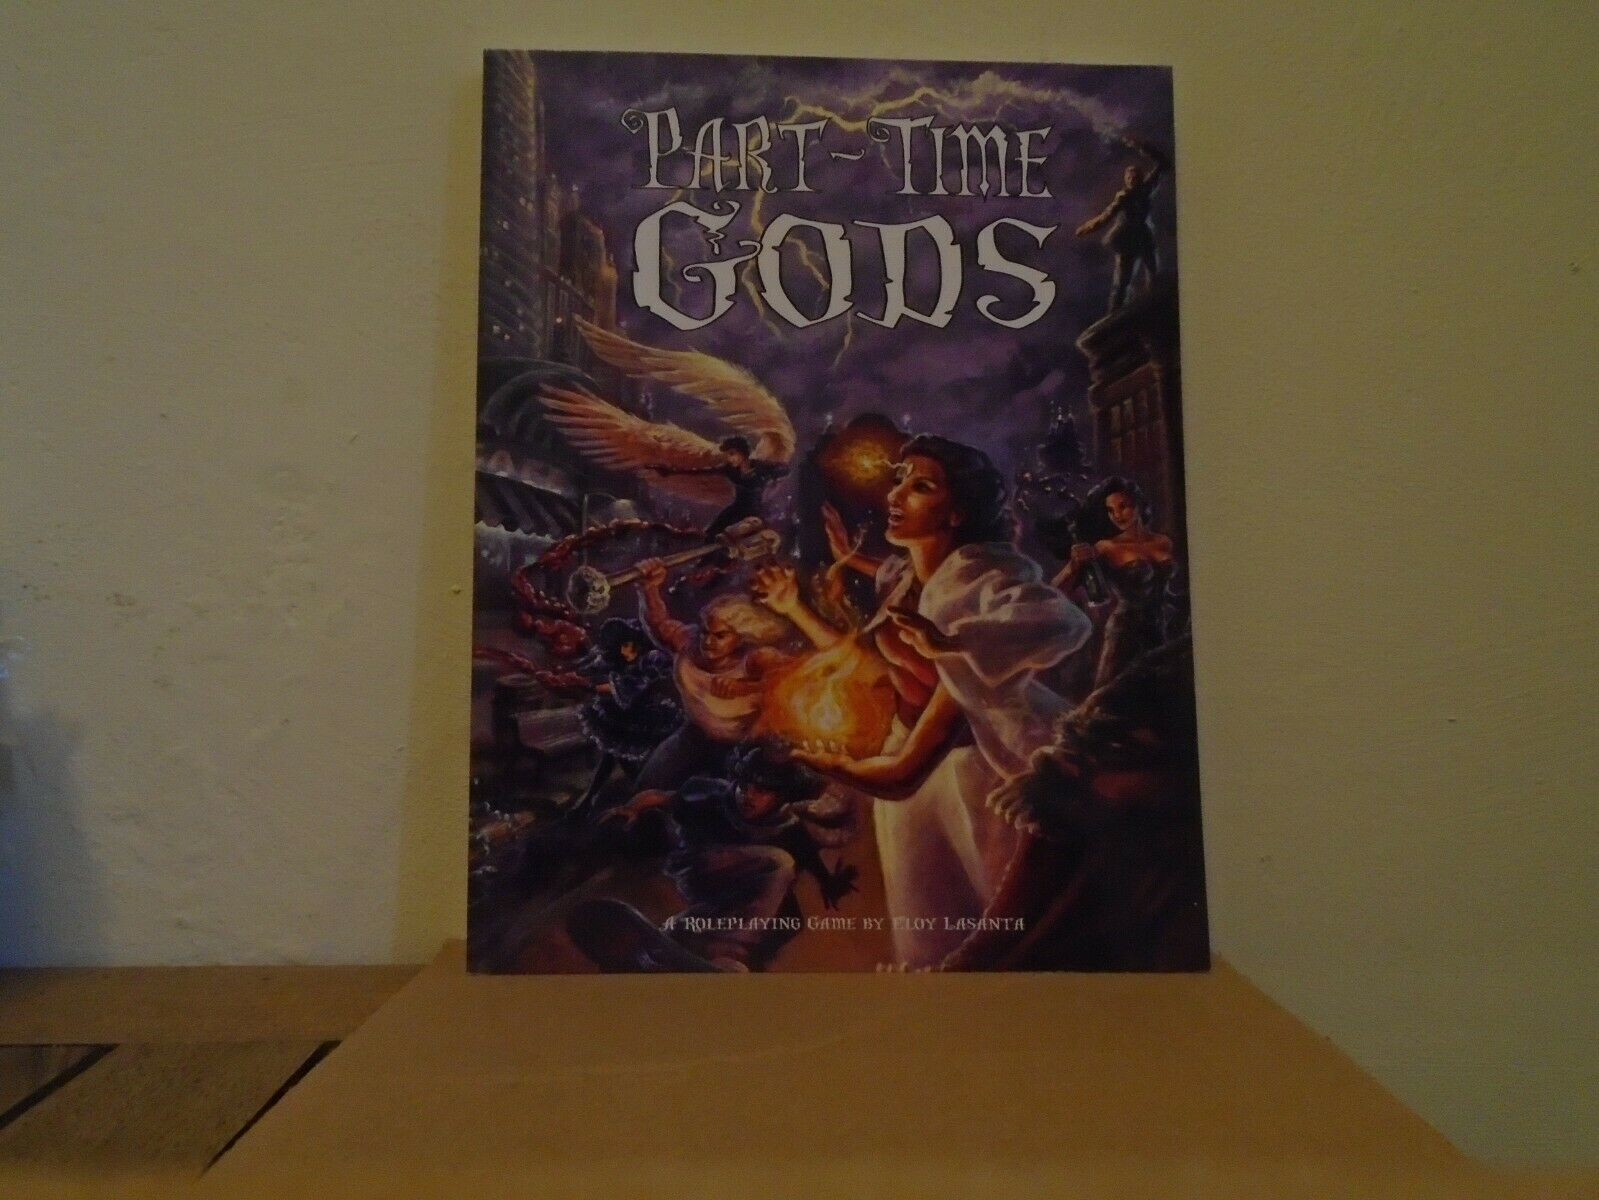 PART-TIME GODS Third Eye Games 3EG201 RPG by Eloy Lasanta softcover